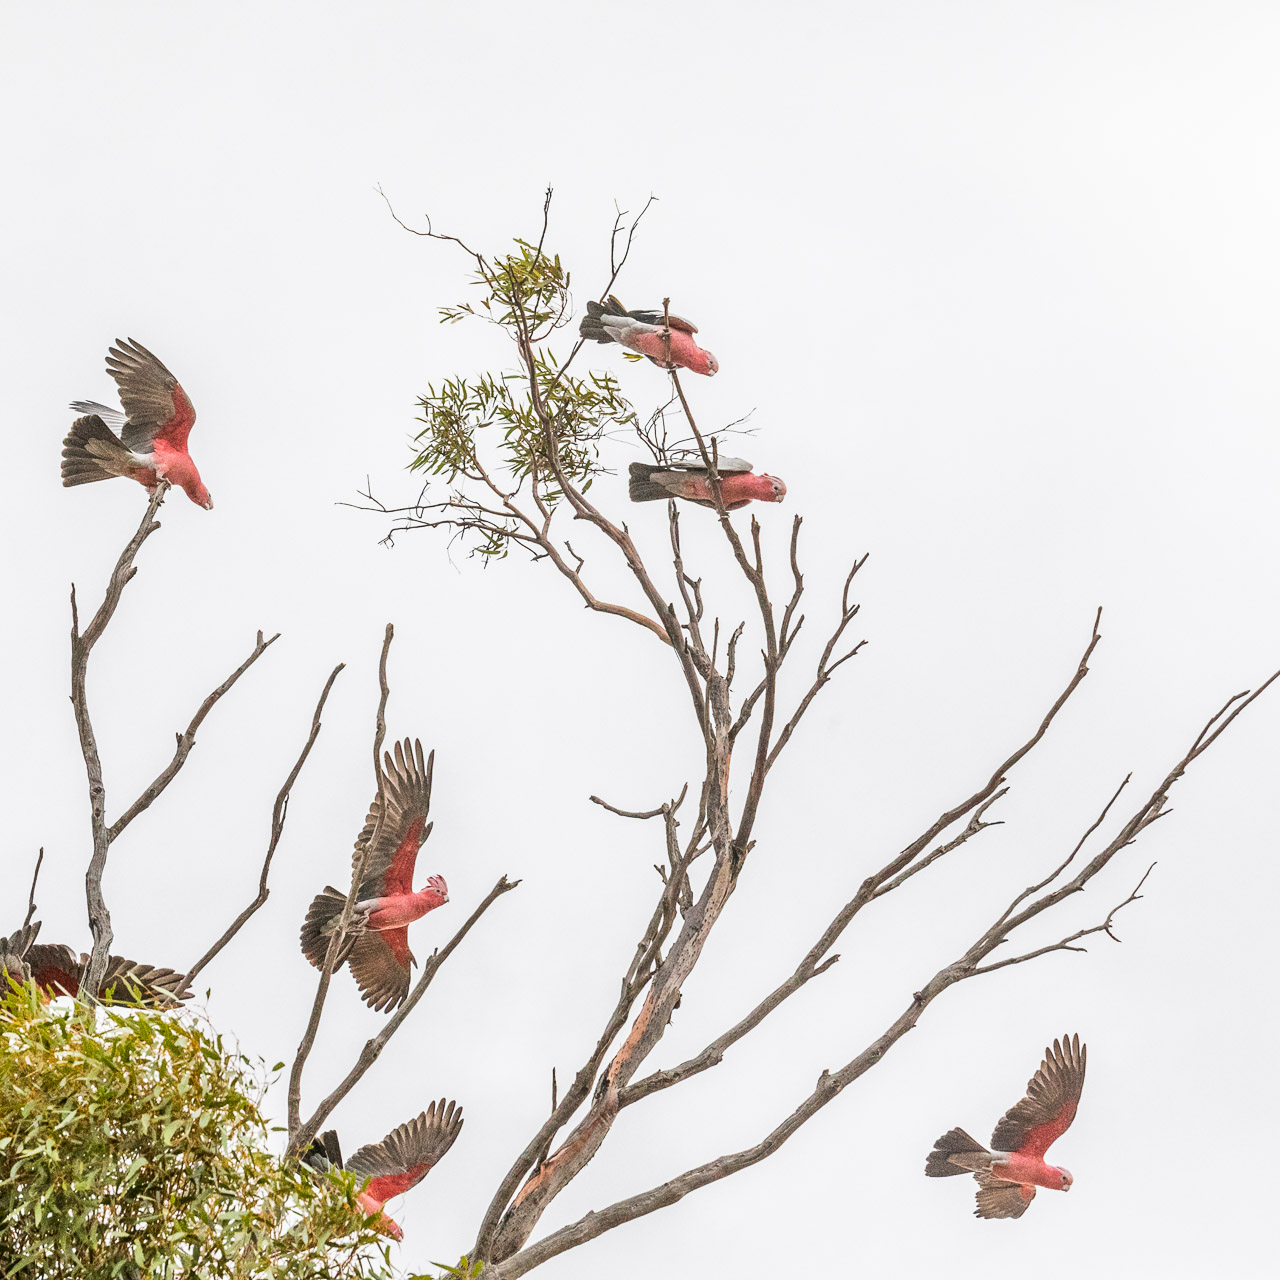 Galahs sitting in a salmon gum eucalyptus tree